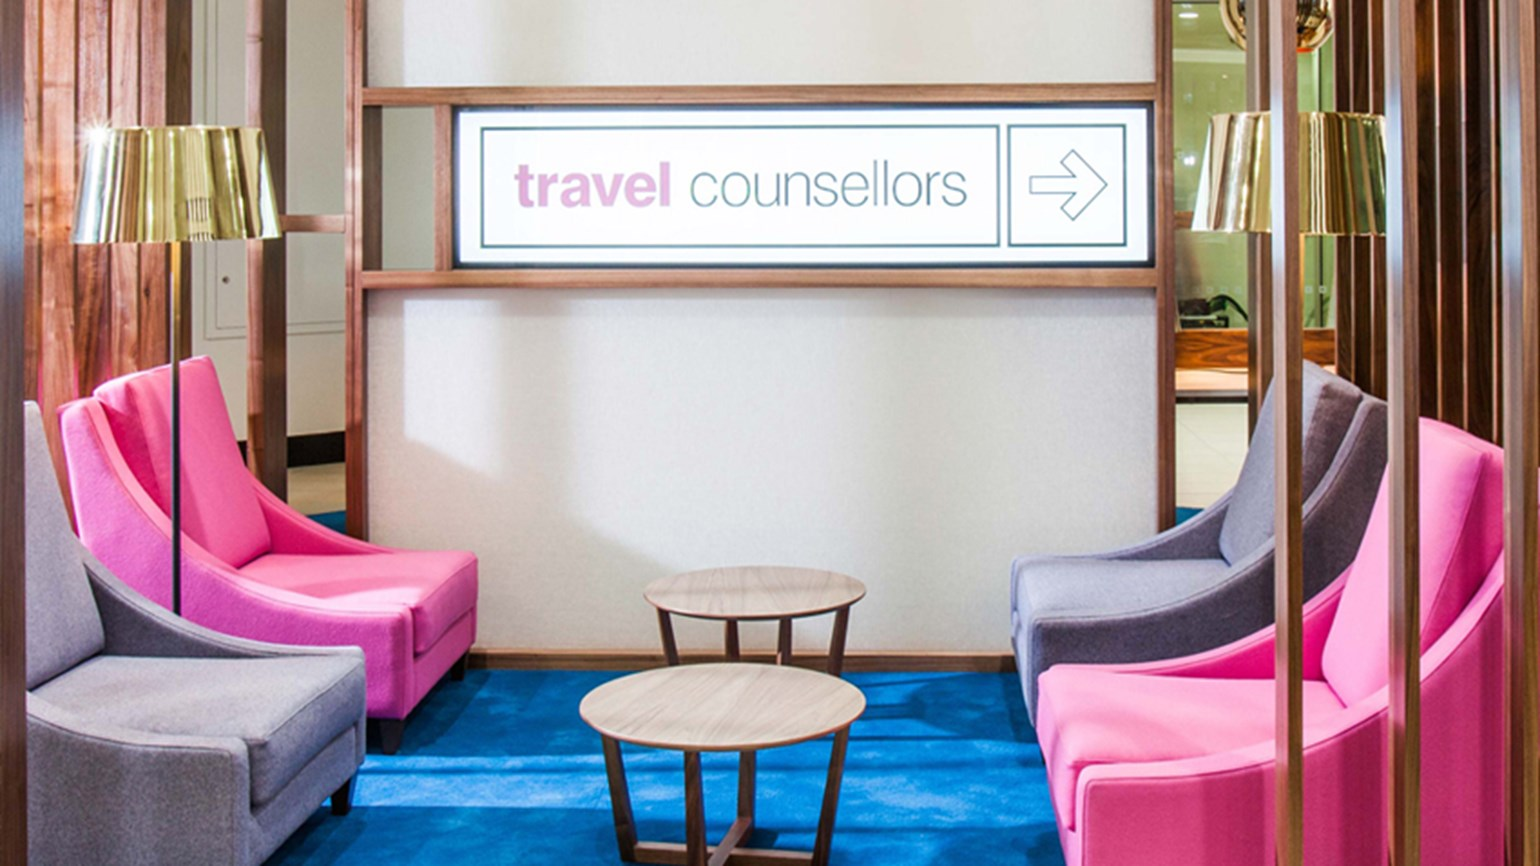 Travel Counsellors for Business appoints head of product and operations